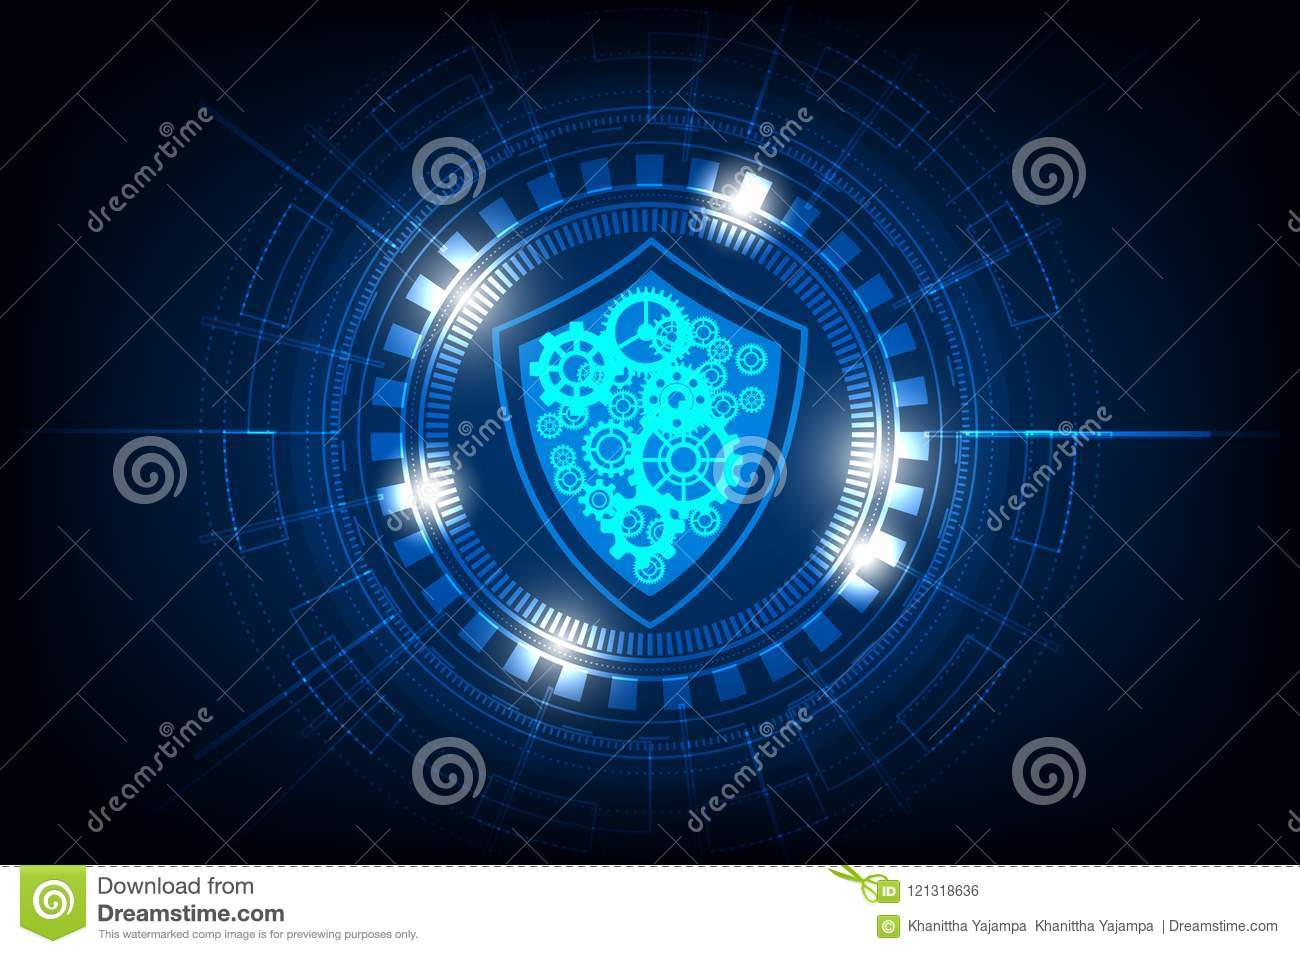 Technology circle with security and gear on blue background,vector illustration.